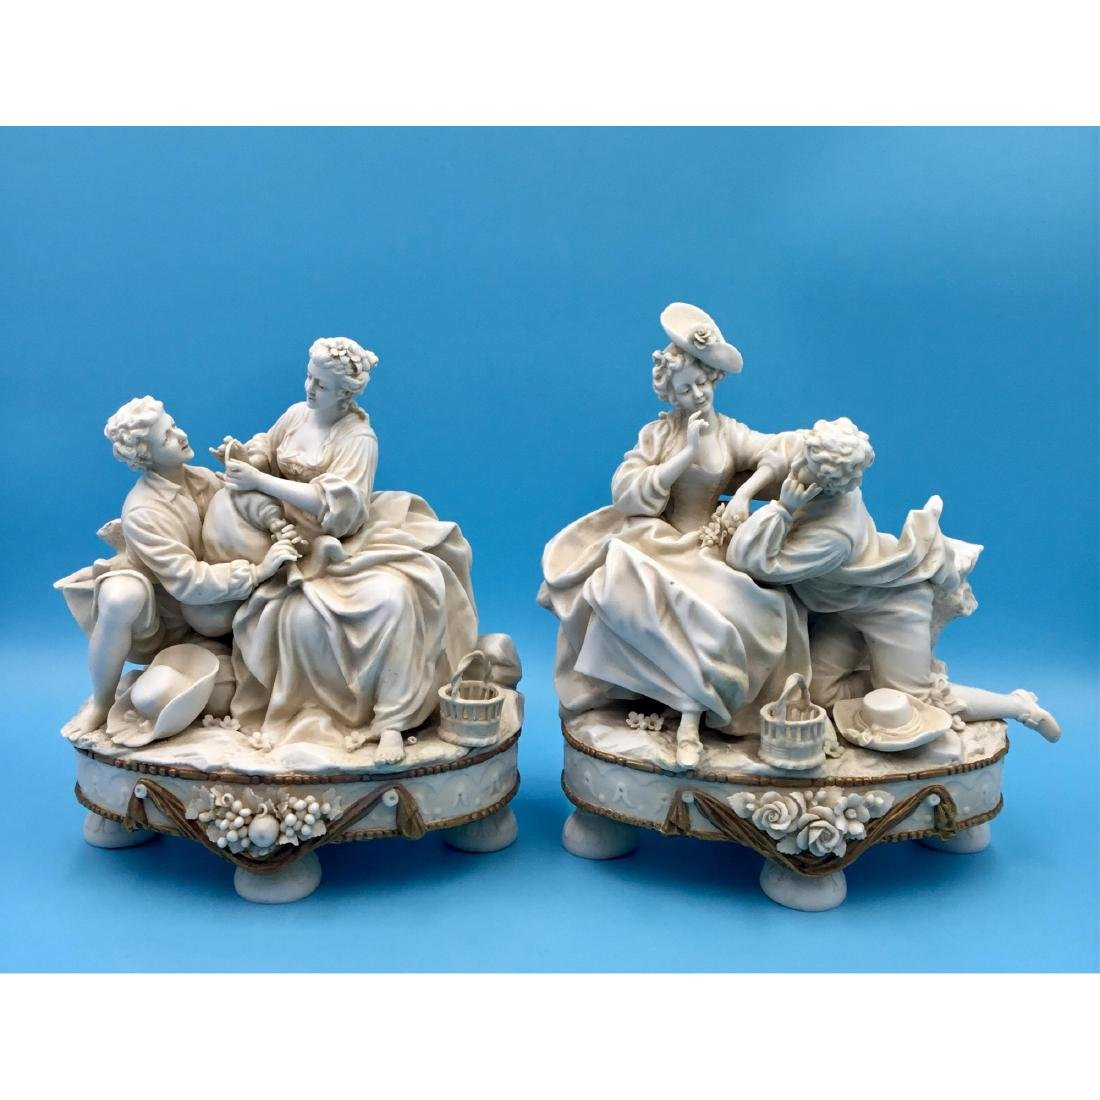 PAIR OF MULLER 19thC GERMAN BISQUE FIGURINES